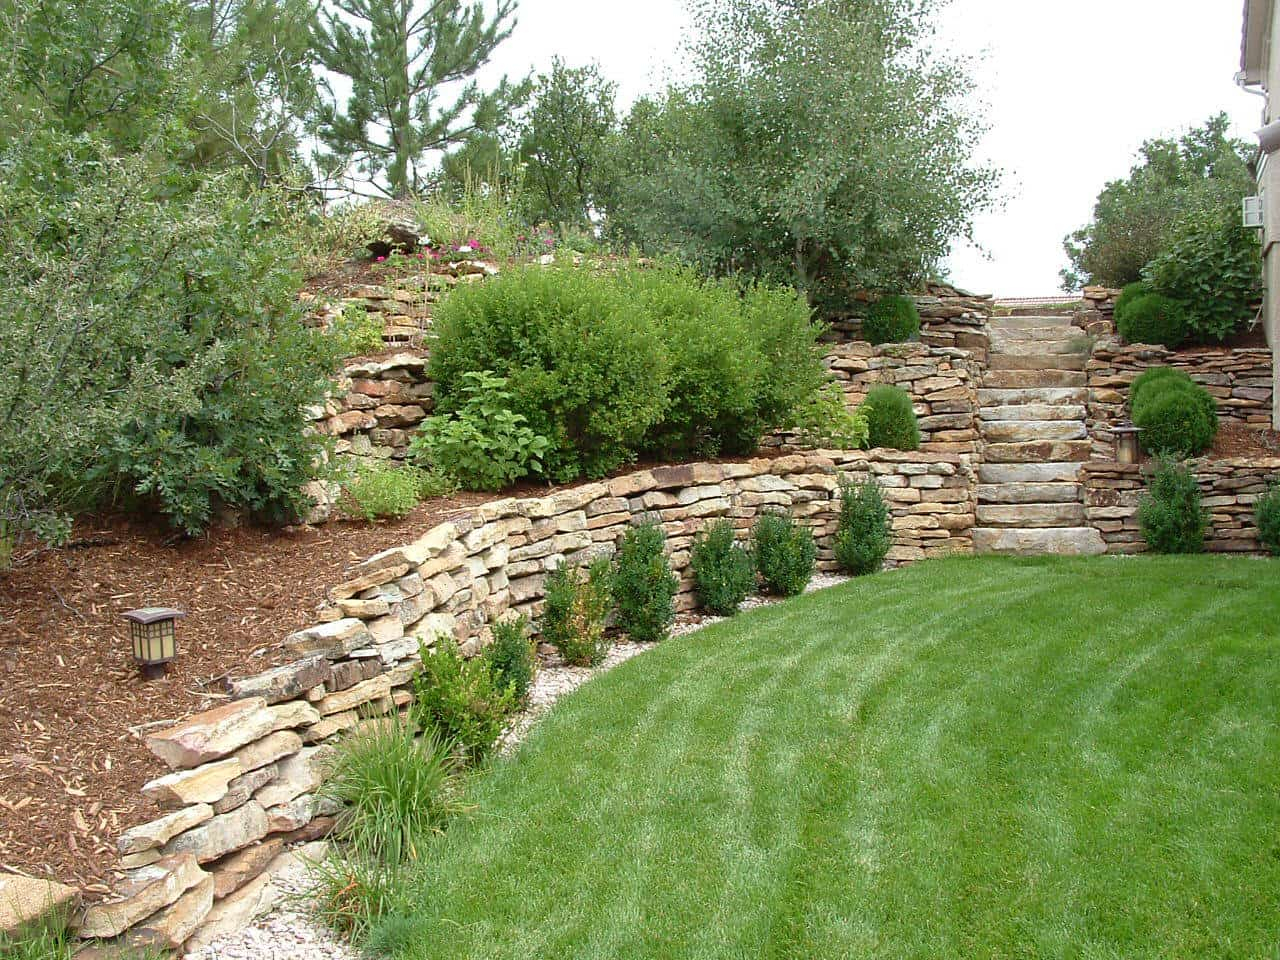 Landscape Design For Sloped Yards Timberline Landscaping Inc with regard to Sloped Backyard Landscaping